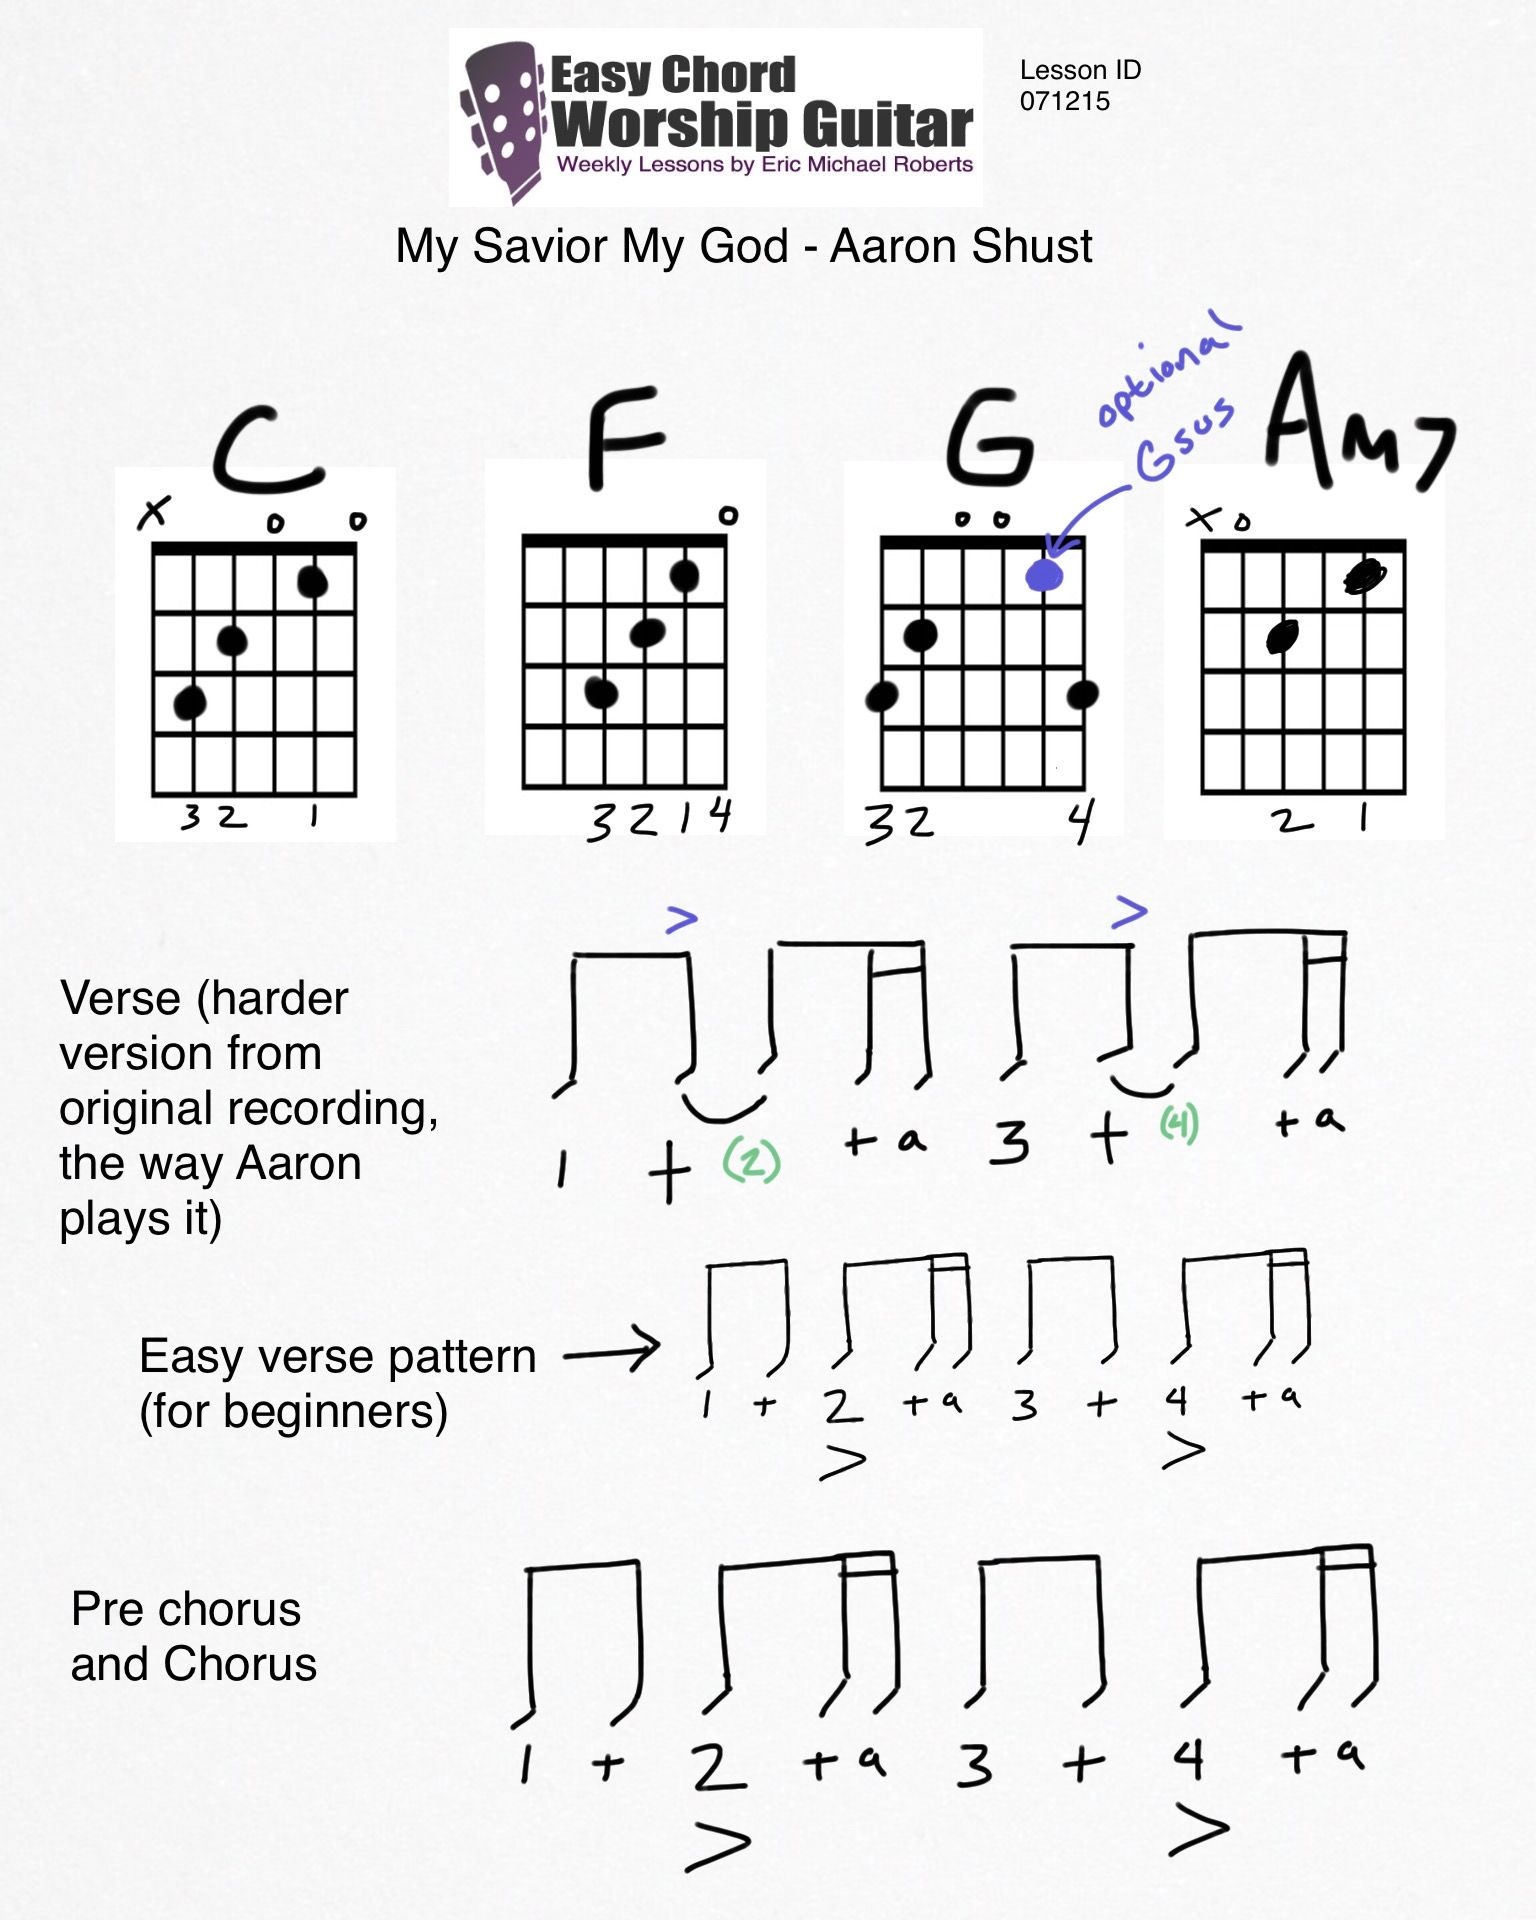 My savior my god by aaron shust lesson id 071215 easy chord chords used in the song hexwebz Choice Image